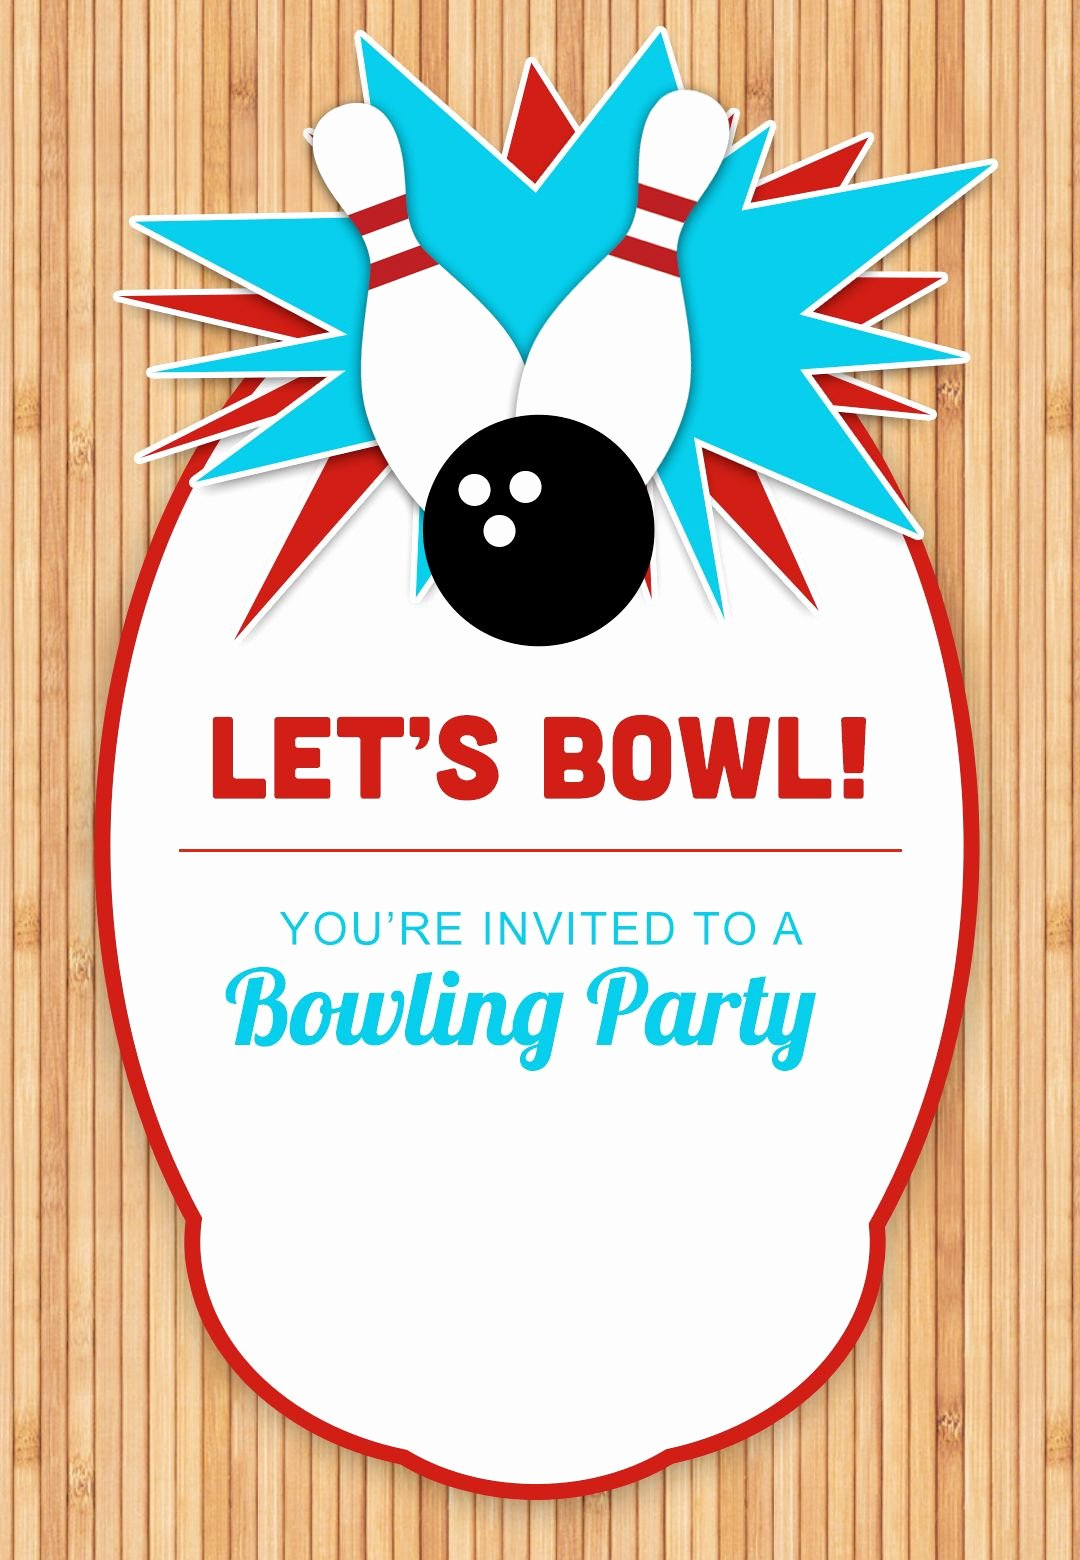 Bowling Invitation Template Free Awesome Bowling Party Free Printable Birthday Invitation